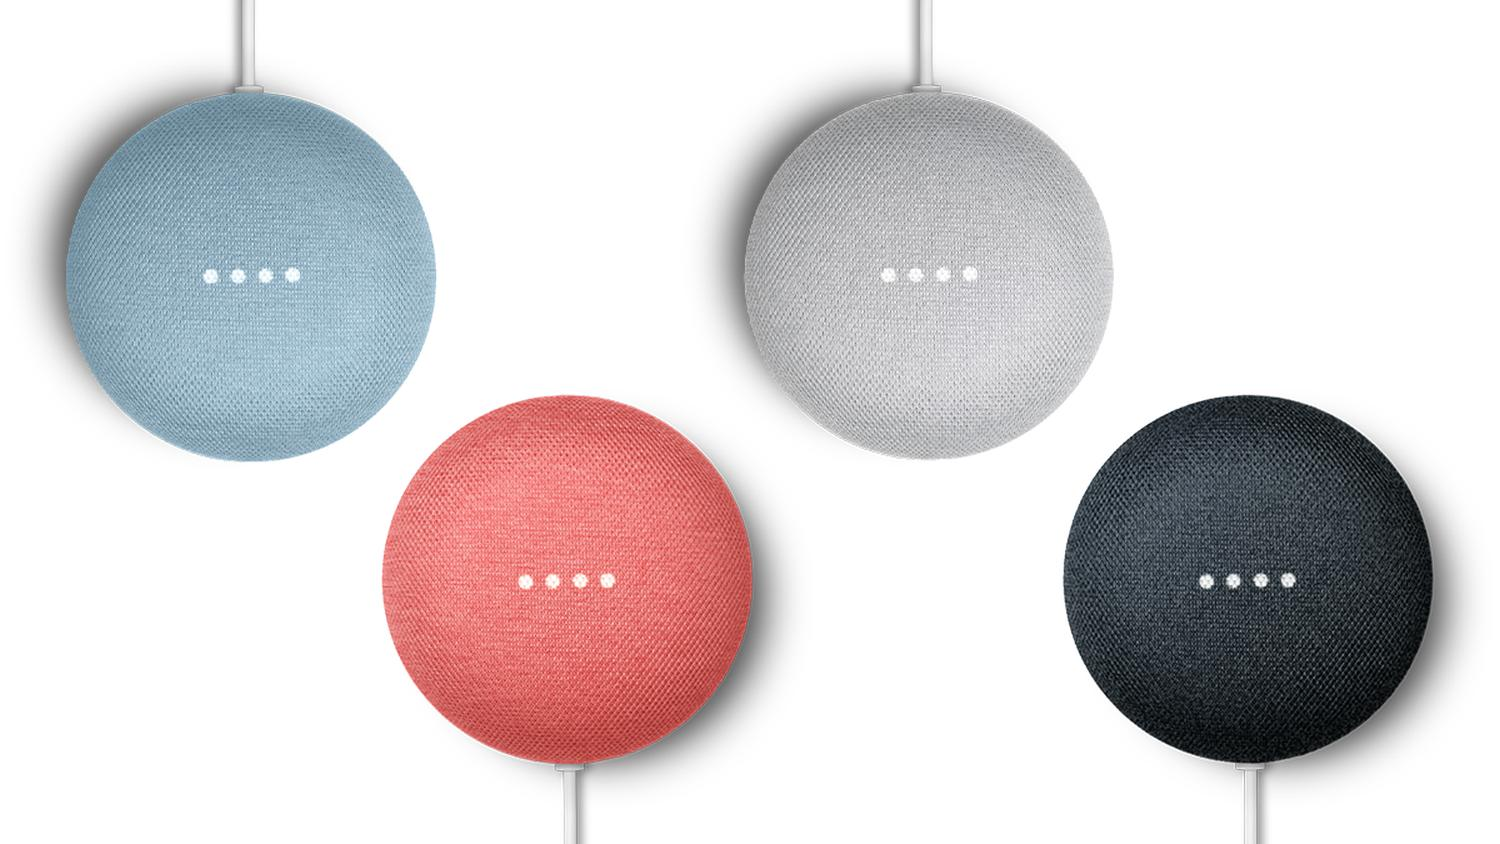 google nest mini smart speaker